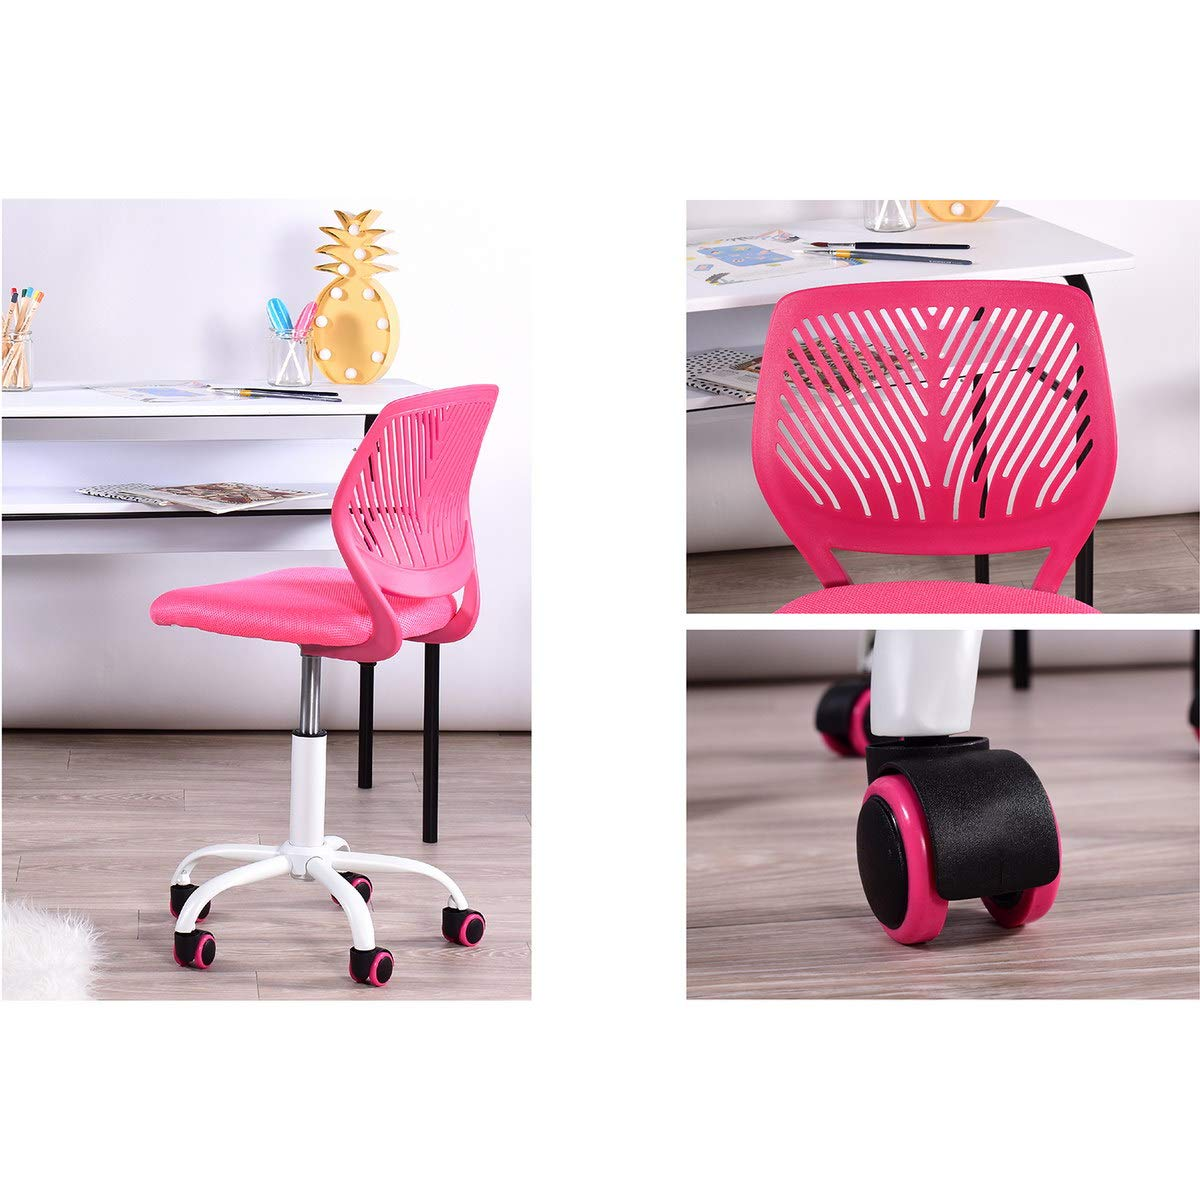 FunitureR Kids Study Chair Armless Swivel Desk Chairs Plastic Colorful Wheels-Pink V1